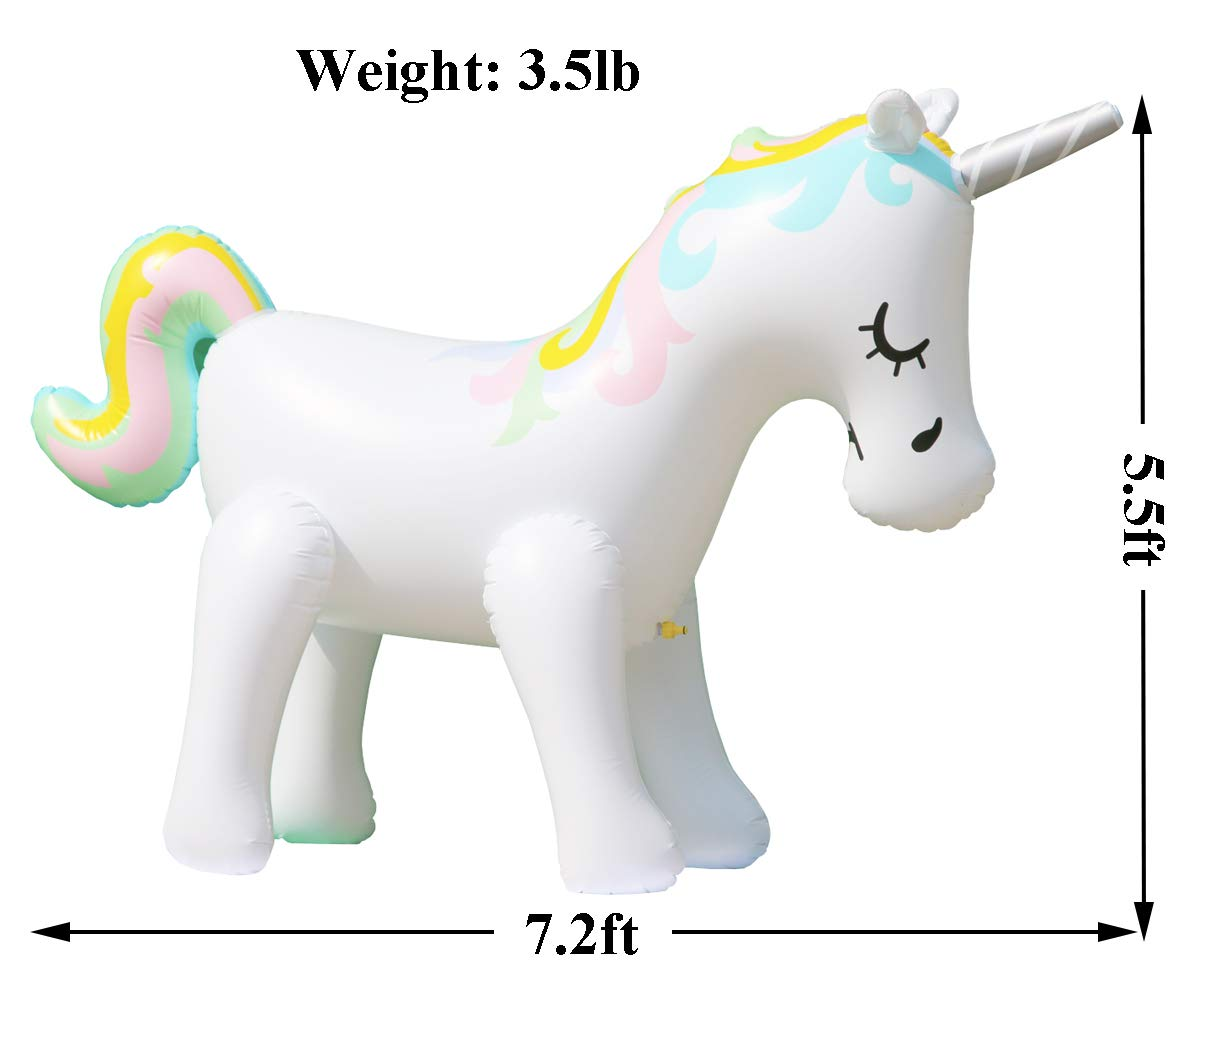 LANGXUN Ginormous Inflatable Unicorn Yard Sprinkler Toy for Kids, Perfect for Unicorn Party Supplies & Outdoor Summer Sprays Water Toys for Toddlers 4